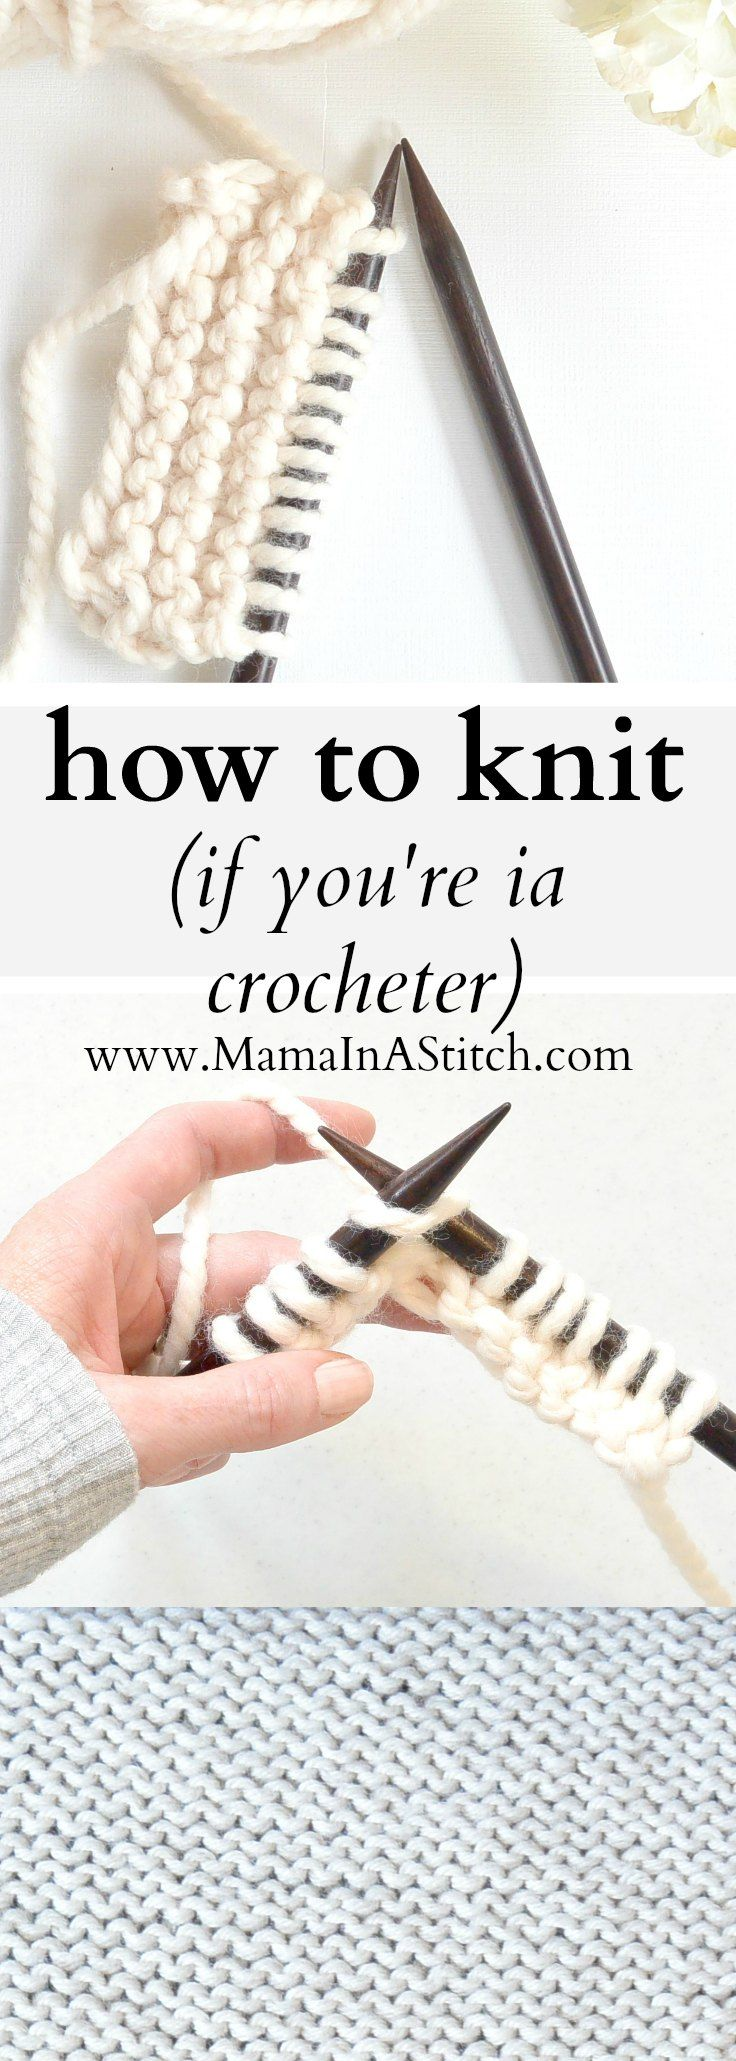 How To Knit (If You Crochet) via @MamaInAStitch This knitting tutorial will show you how to knit. It uses a method where you'll hold the yarn similarly to how you hold it with crochet. #crafts #diy #crochet